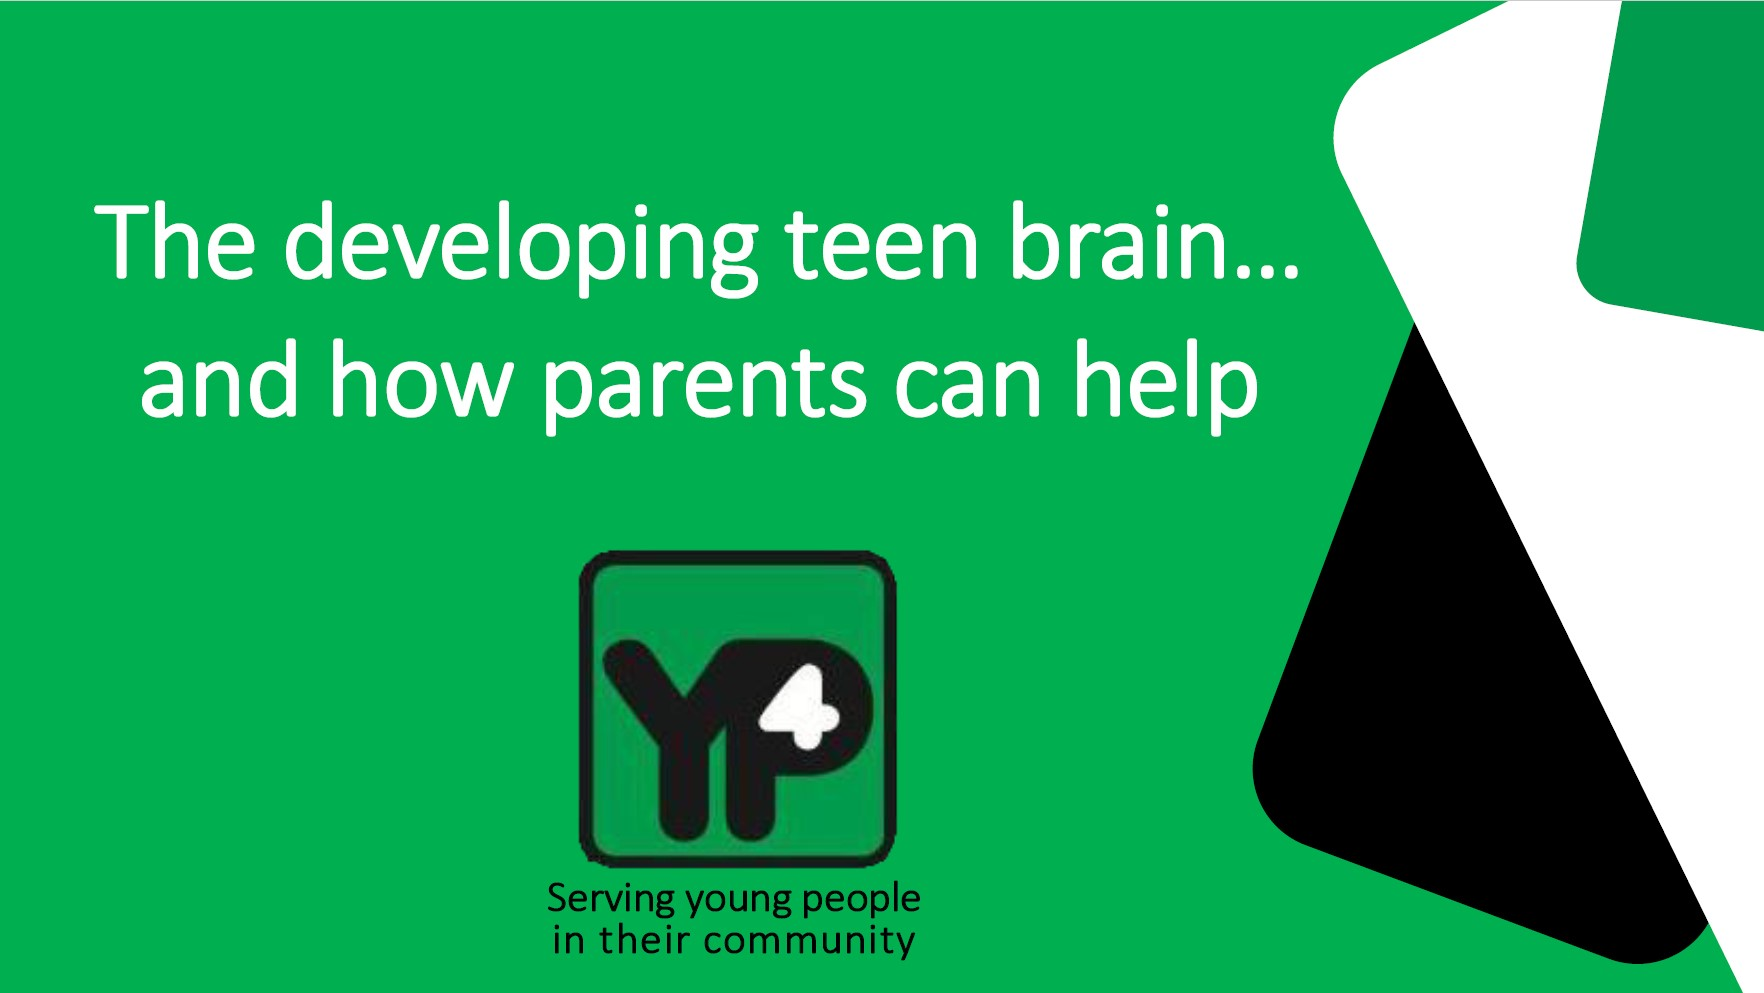 Teen Brain - Information for parents